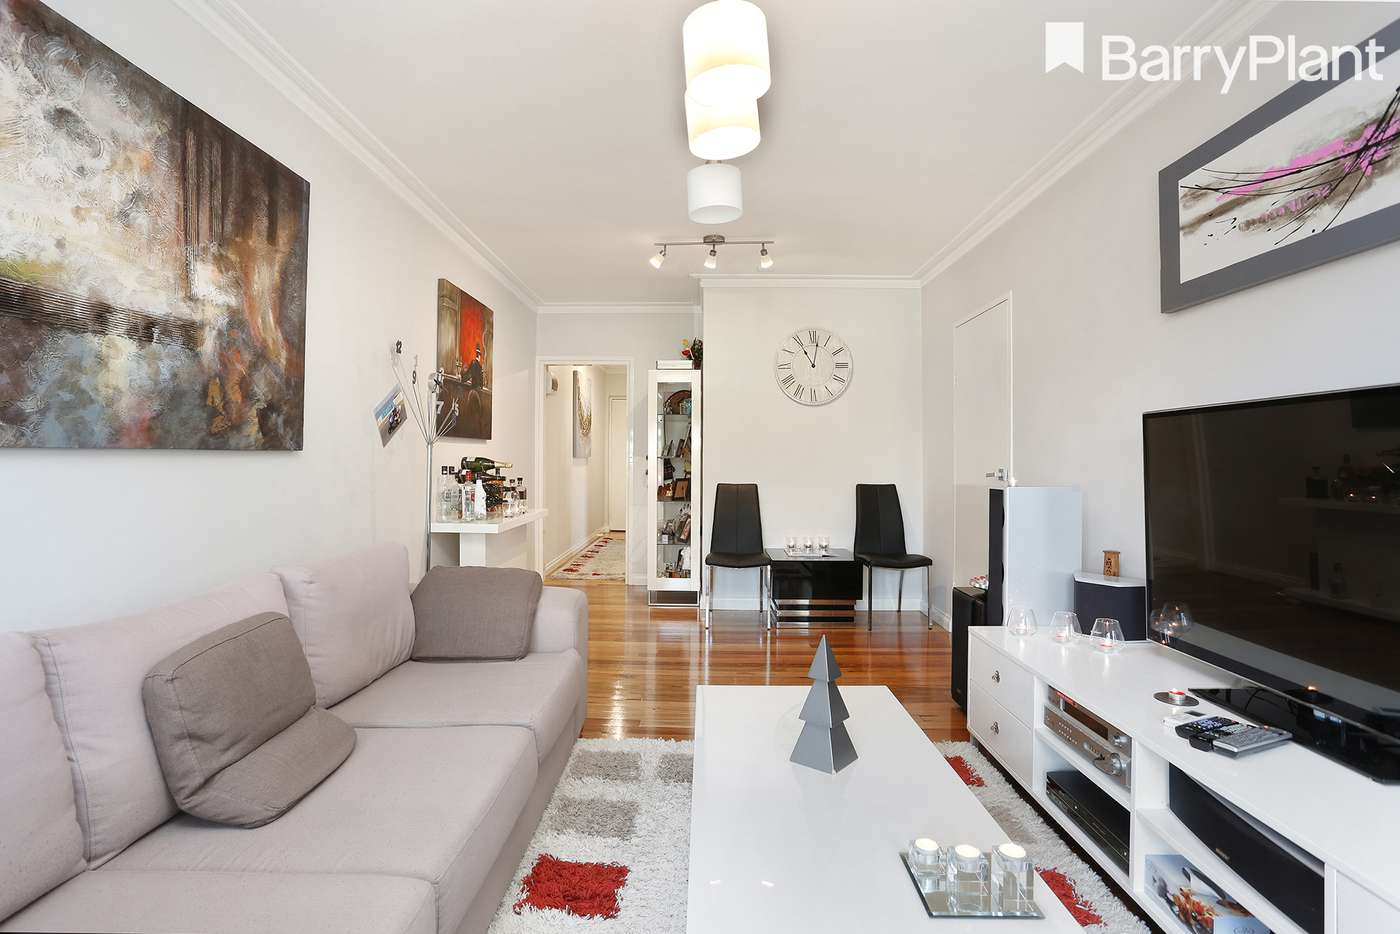 Main view of Homely apartment listing, 5/52a Dunstan Parade, Campbellfield VIC 3061